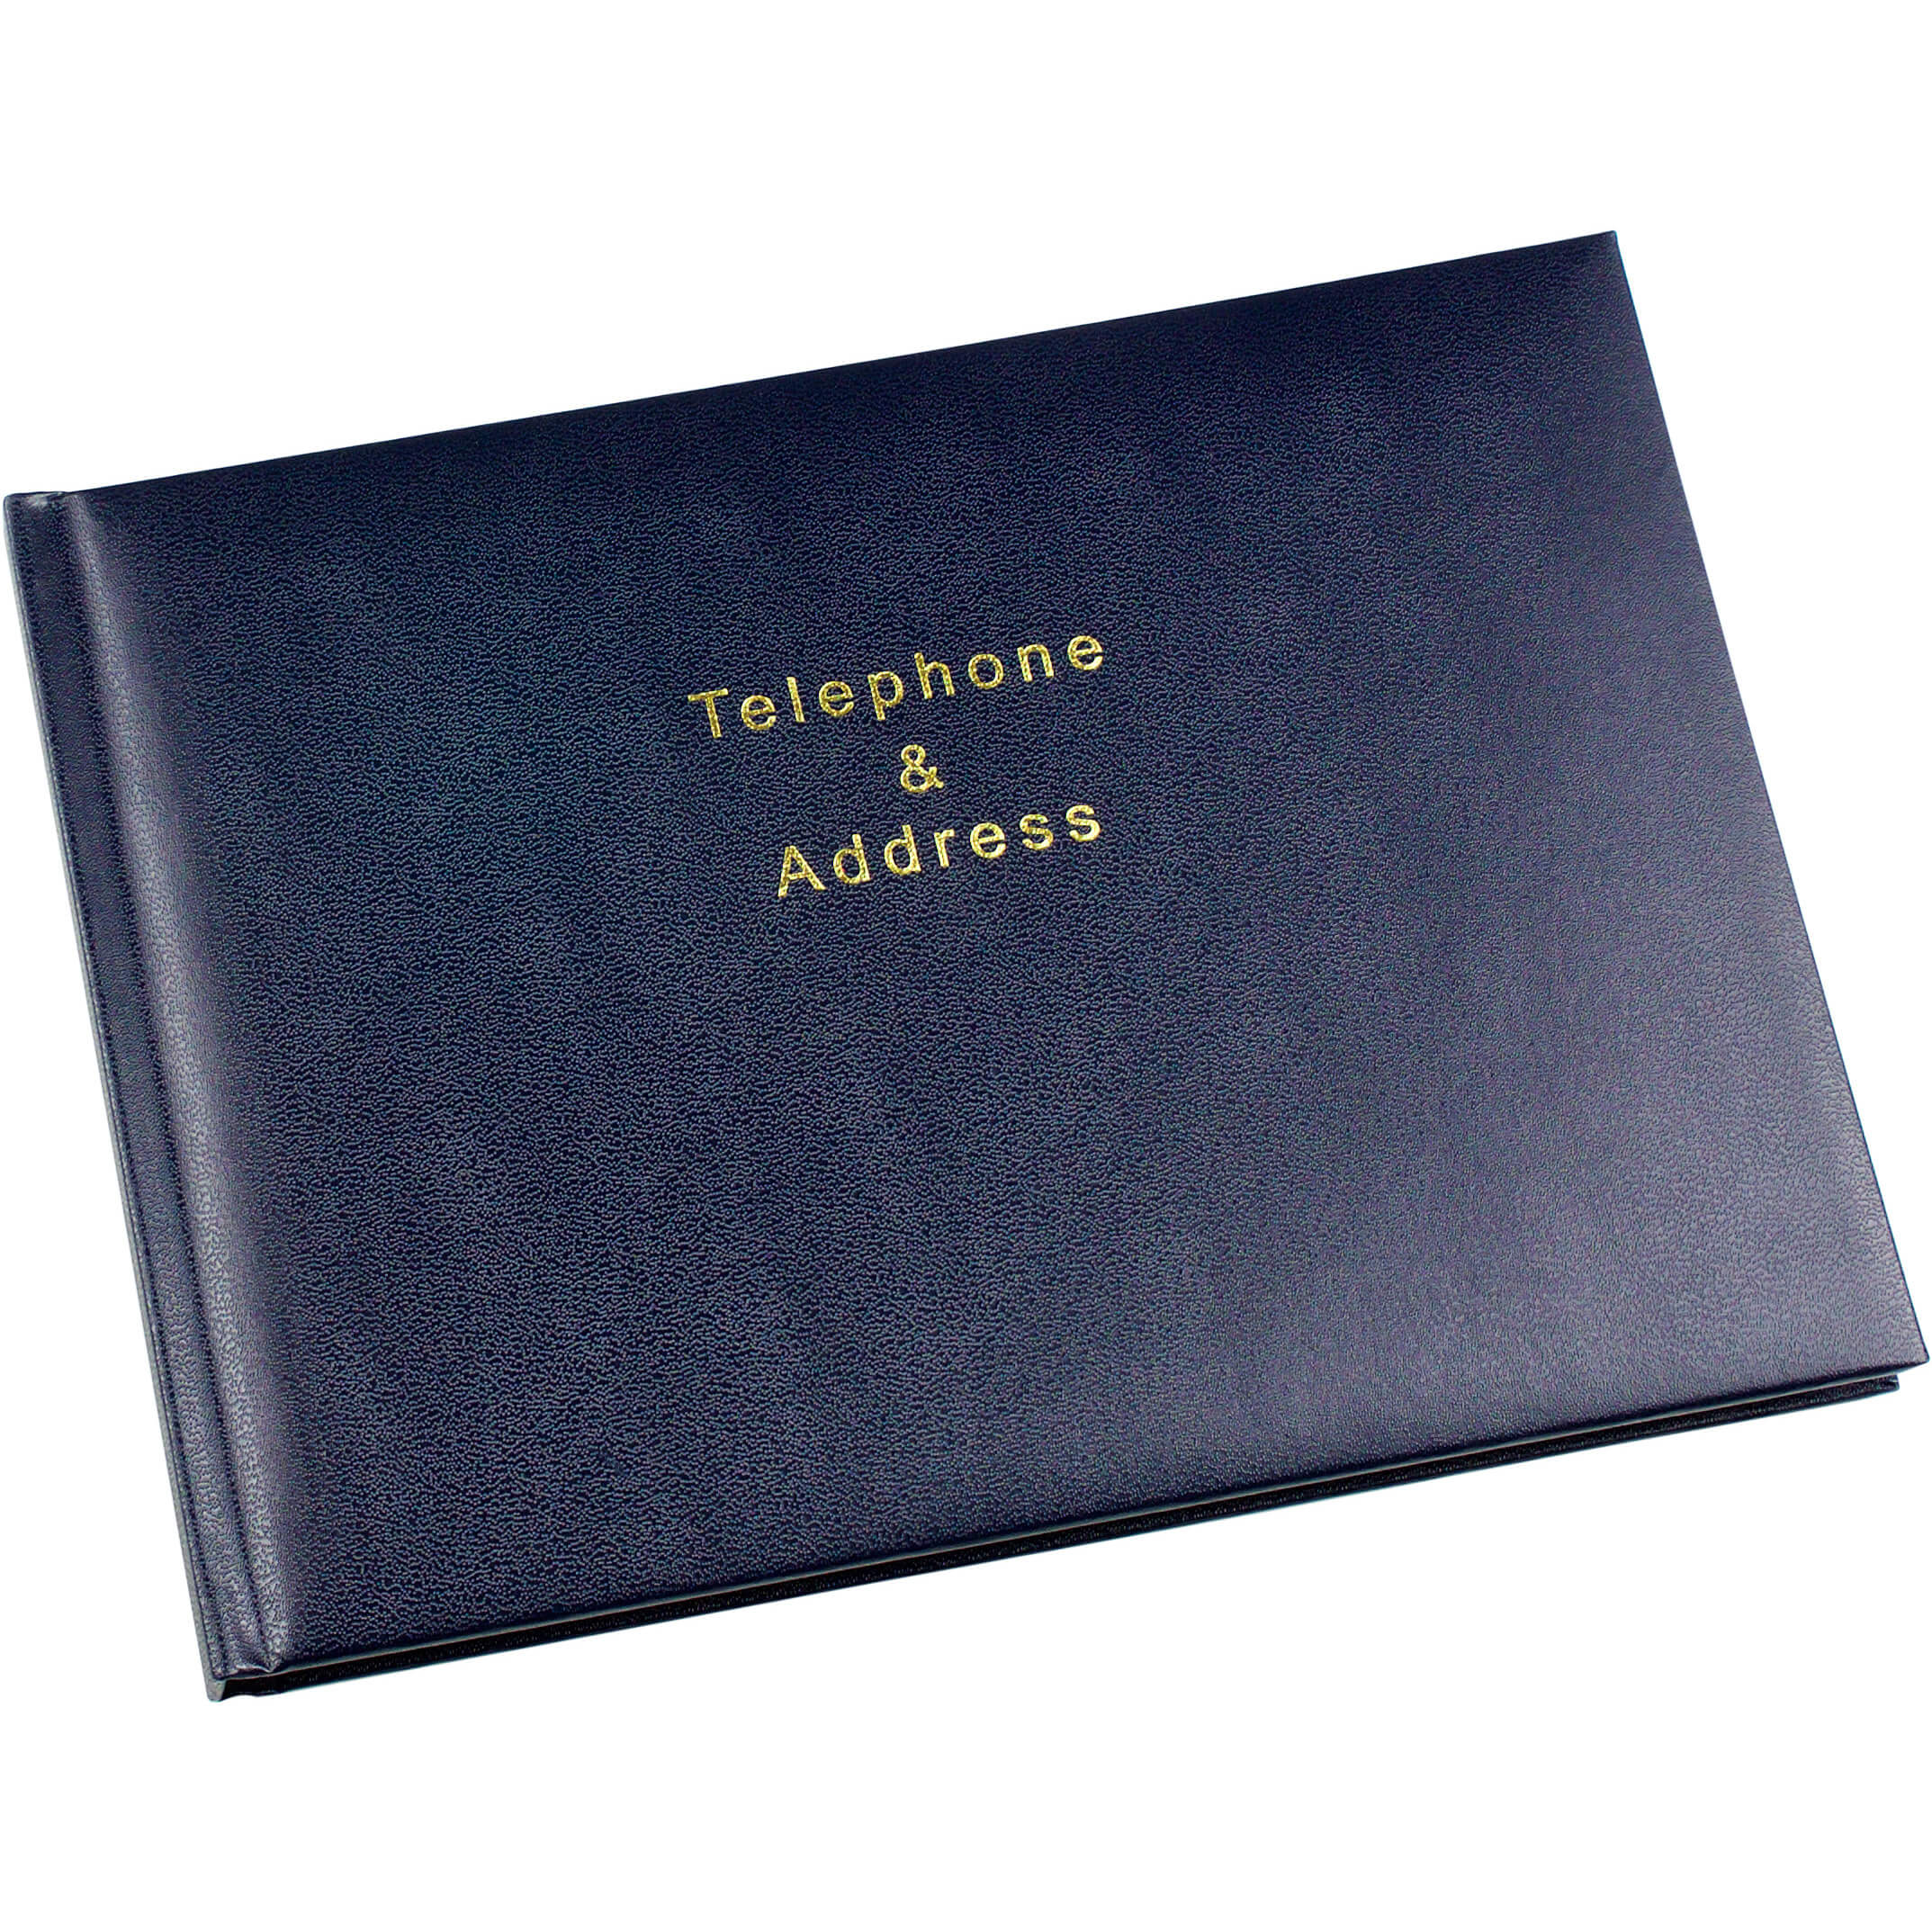 Esposti Telephone and Address Book - 64 pages (128 sides) - Blue - Size 215 x 160mm